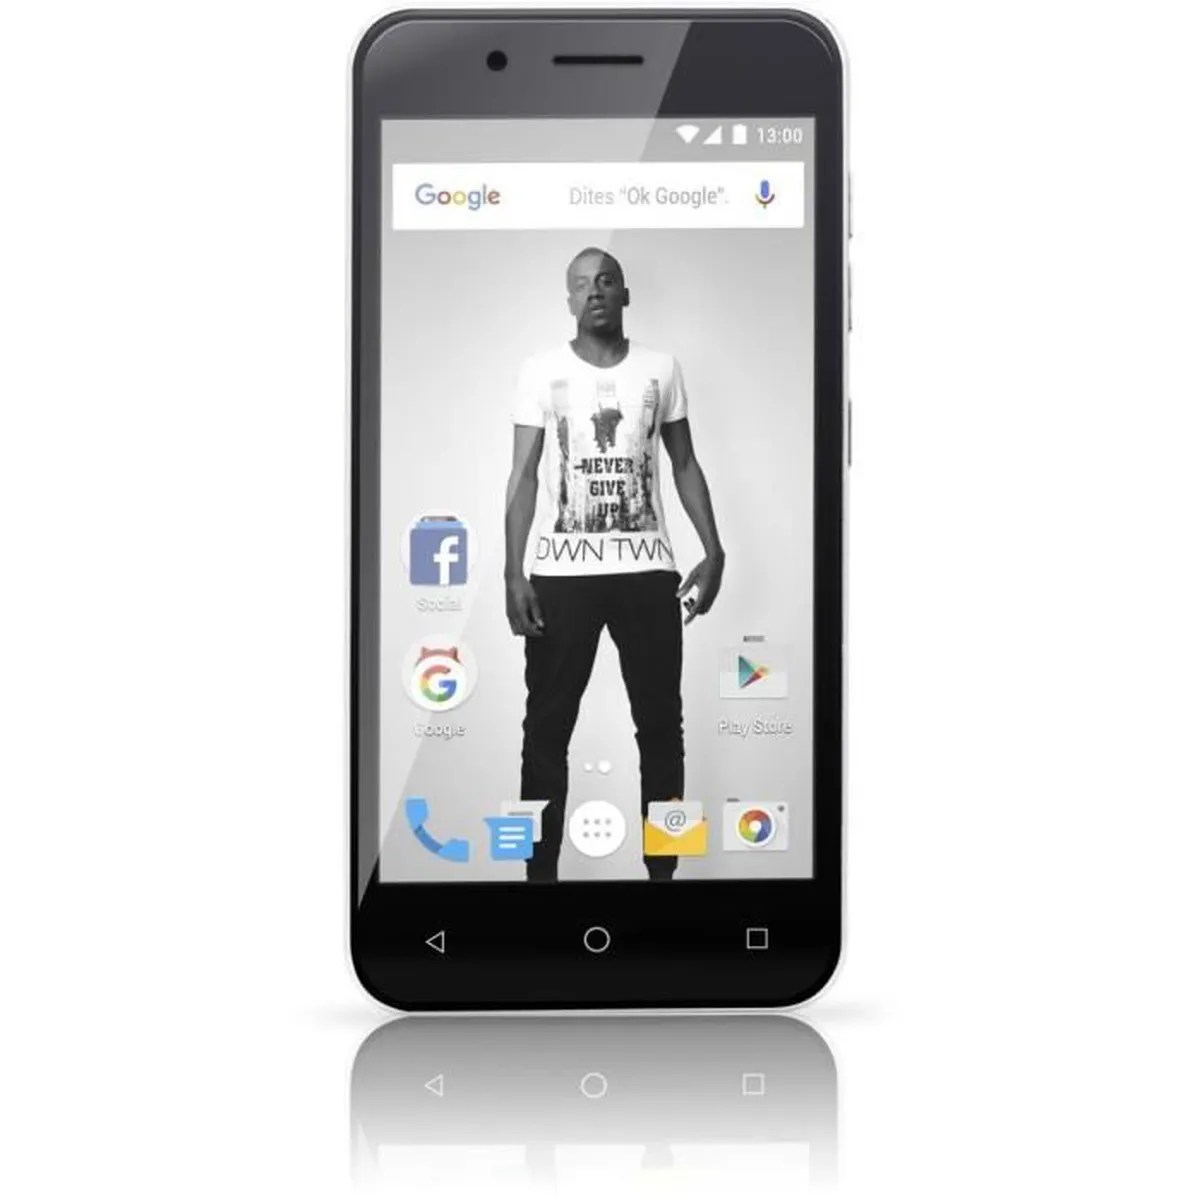 Promo Smartphone Sans Abonnement Mobile Sans Abonnement Simple Ventes Exclusives Selecline